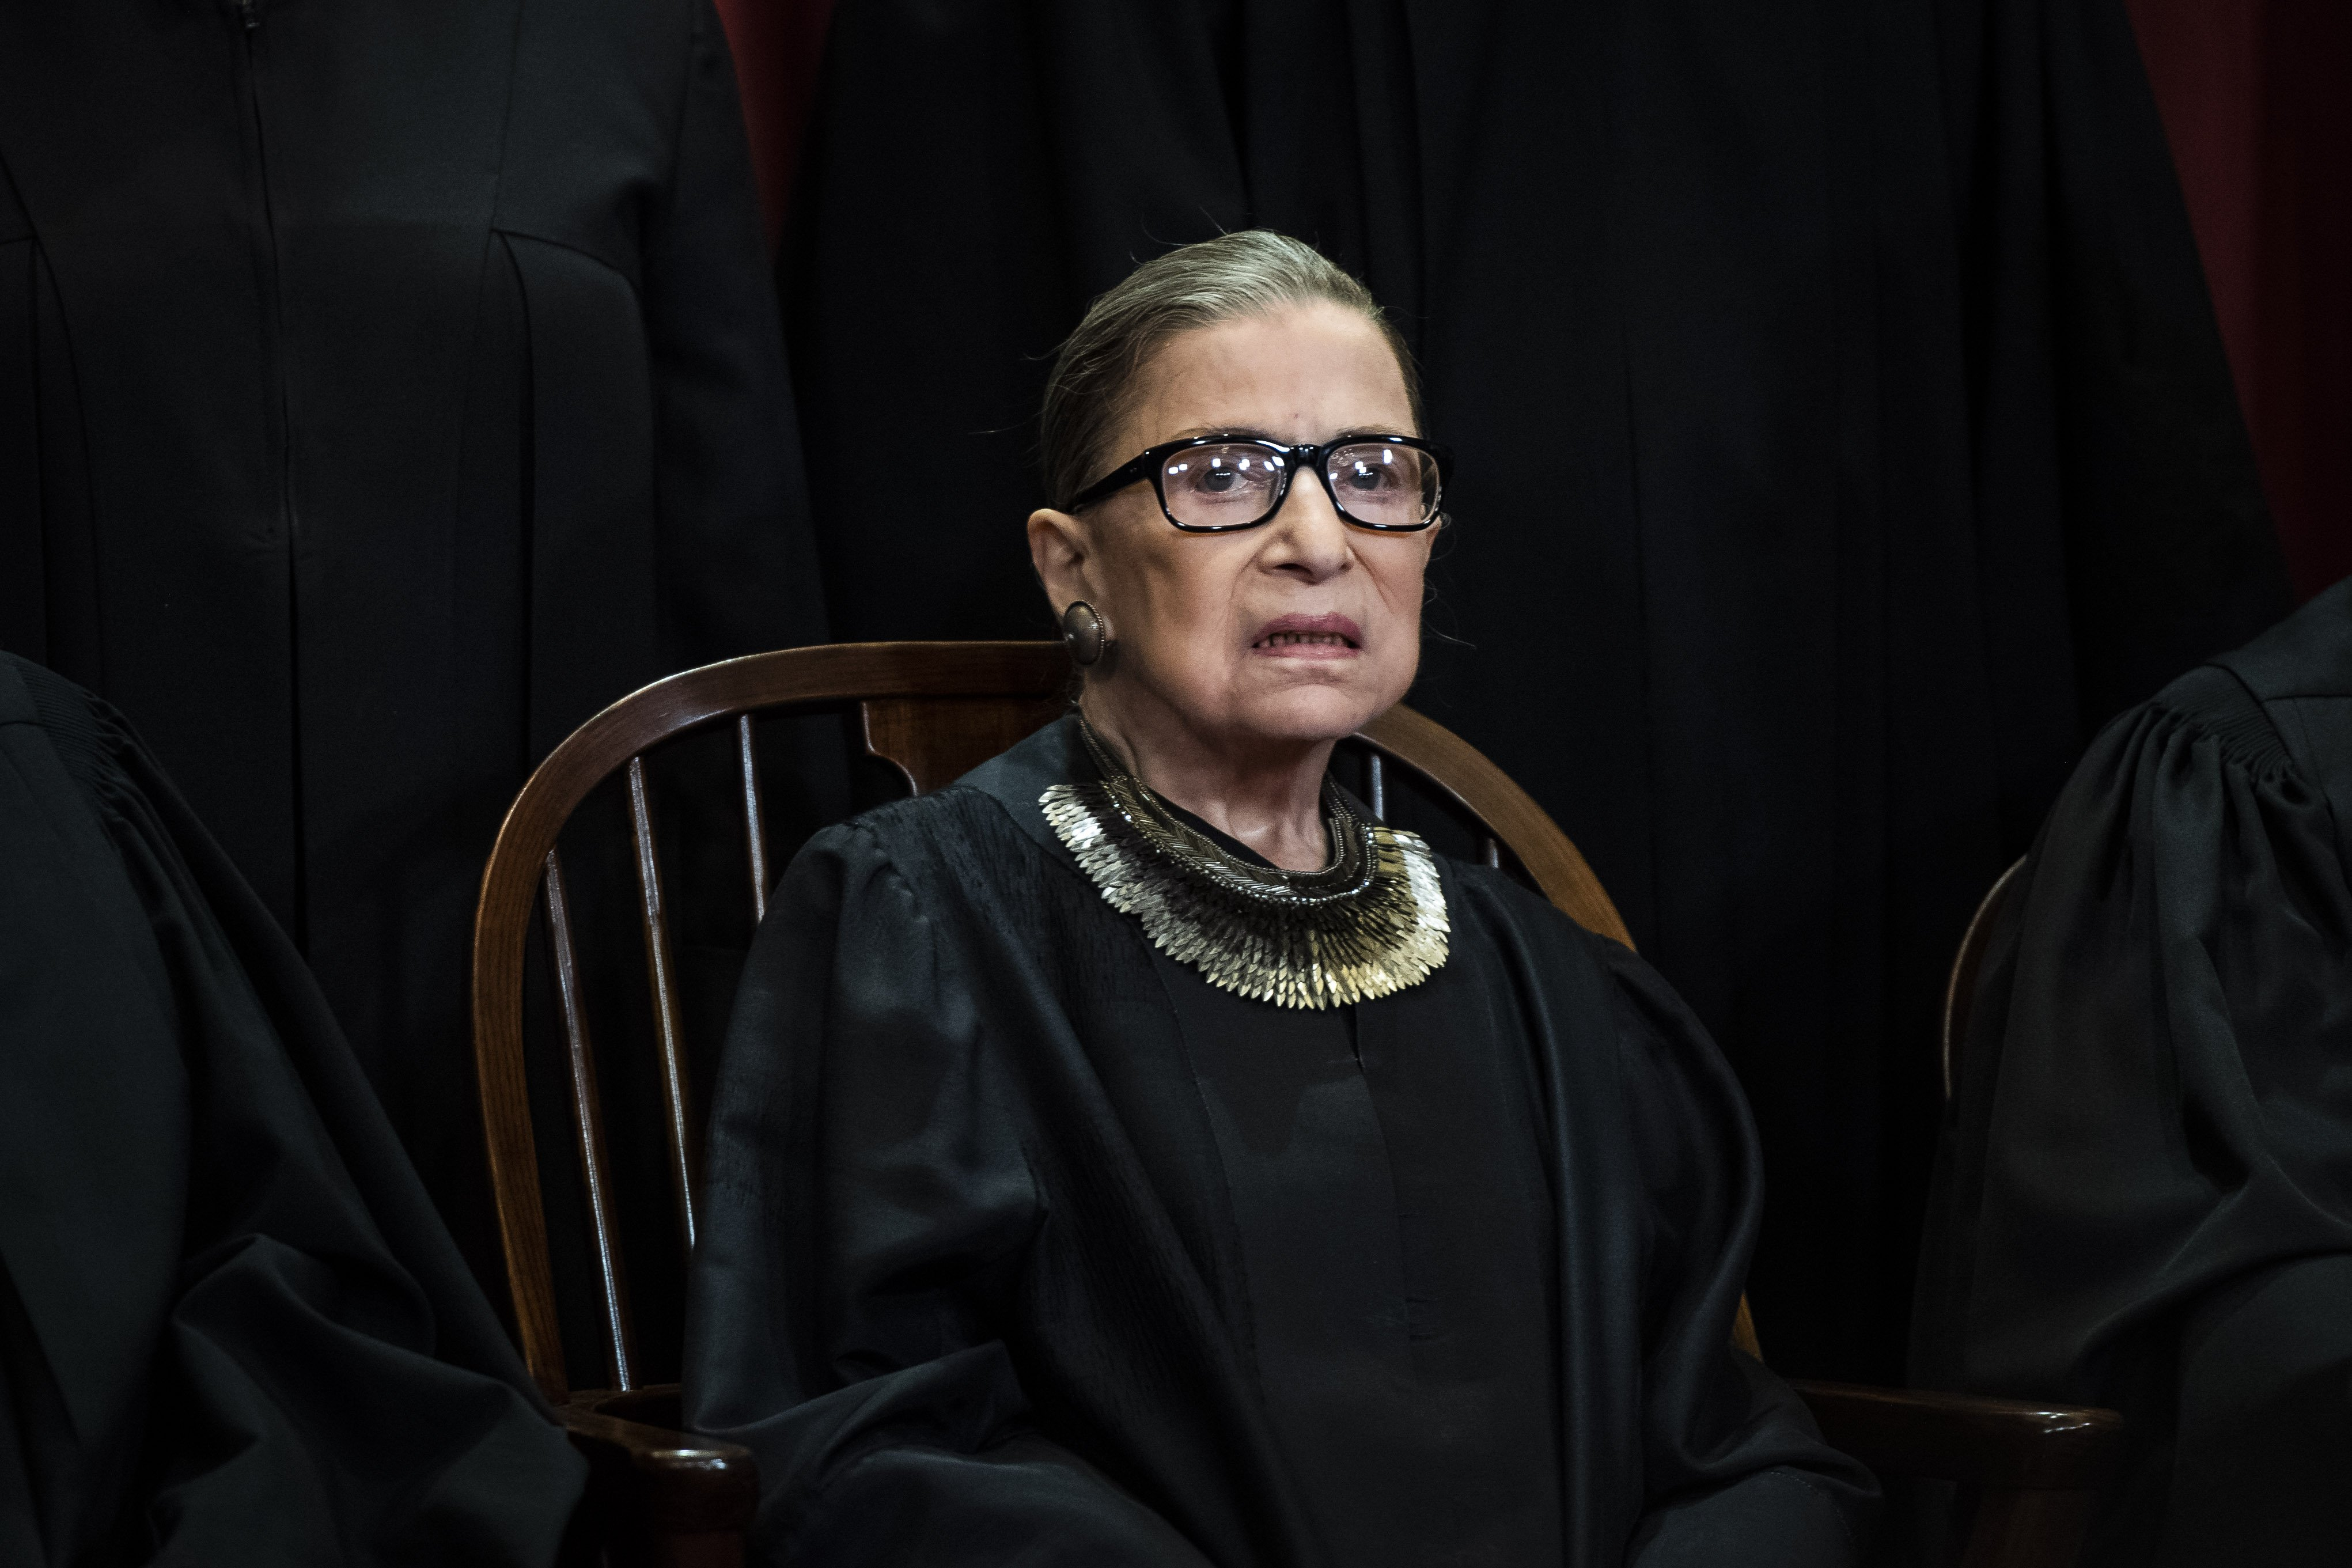 Ruth Bader Ginsburg poses during official group photo at the Supreme Court on Friday, Nov. 30, 2018, in Washington, DC. | Source: Getty Images.